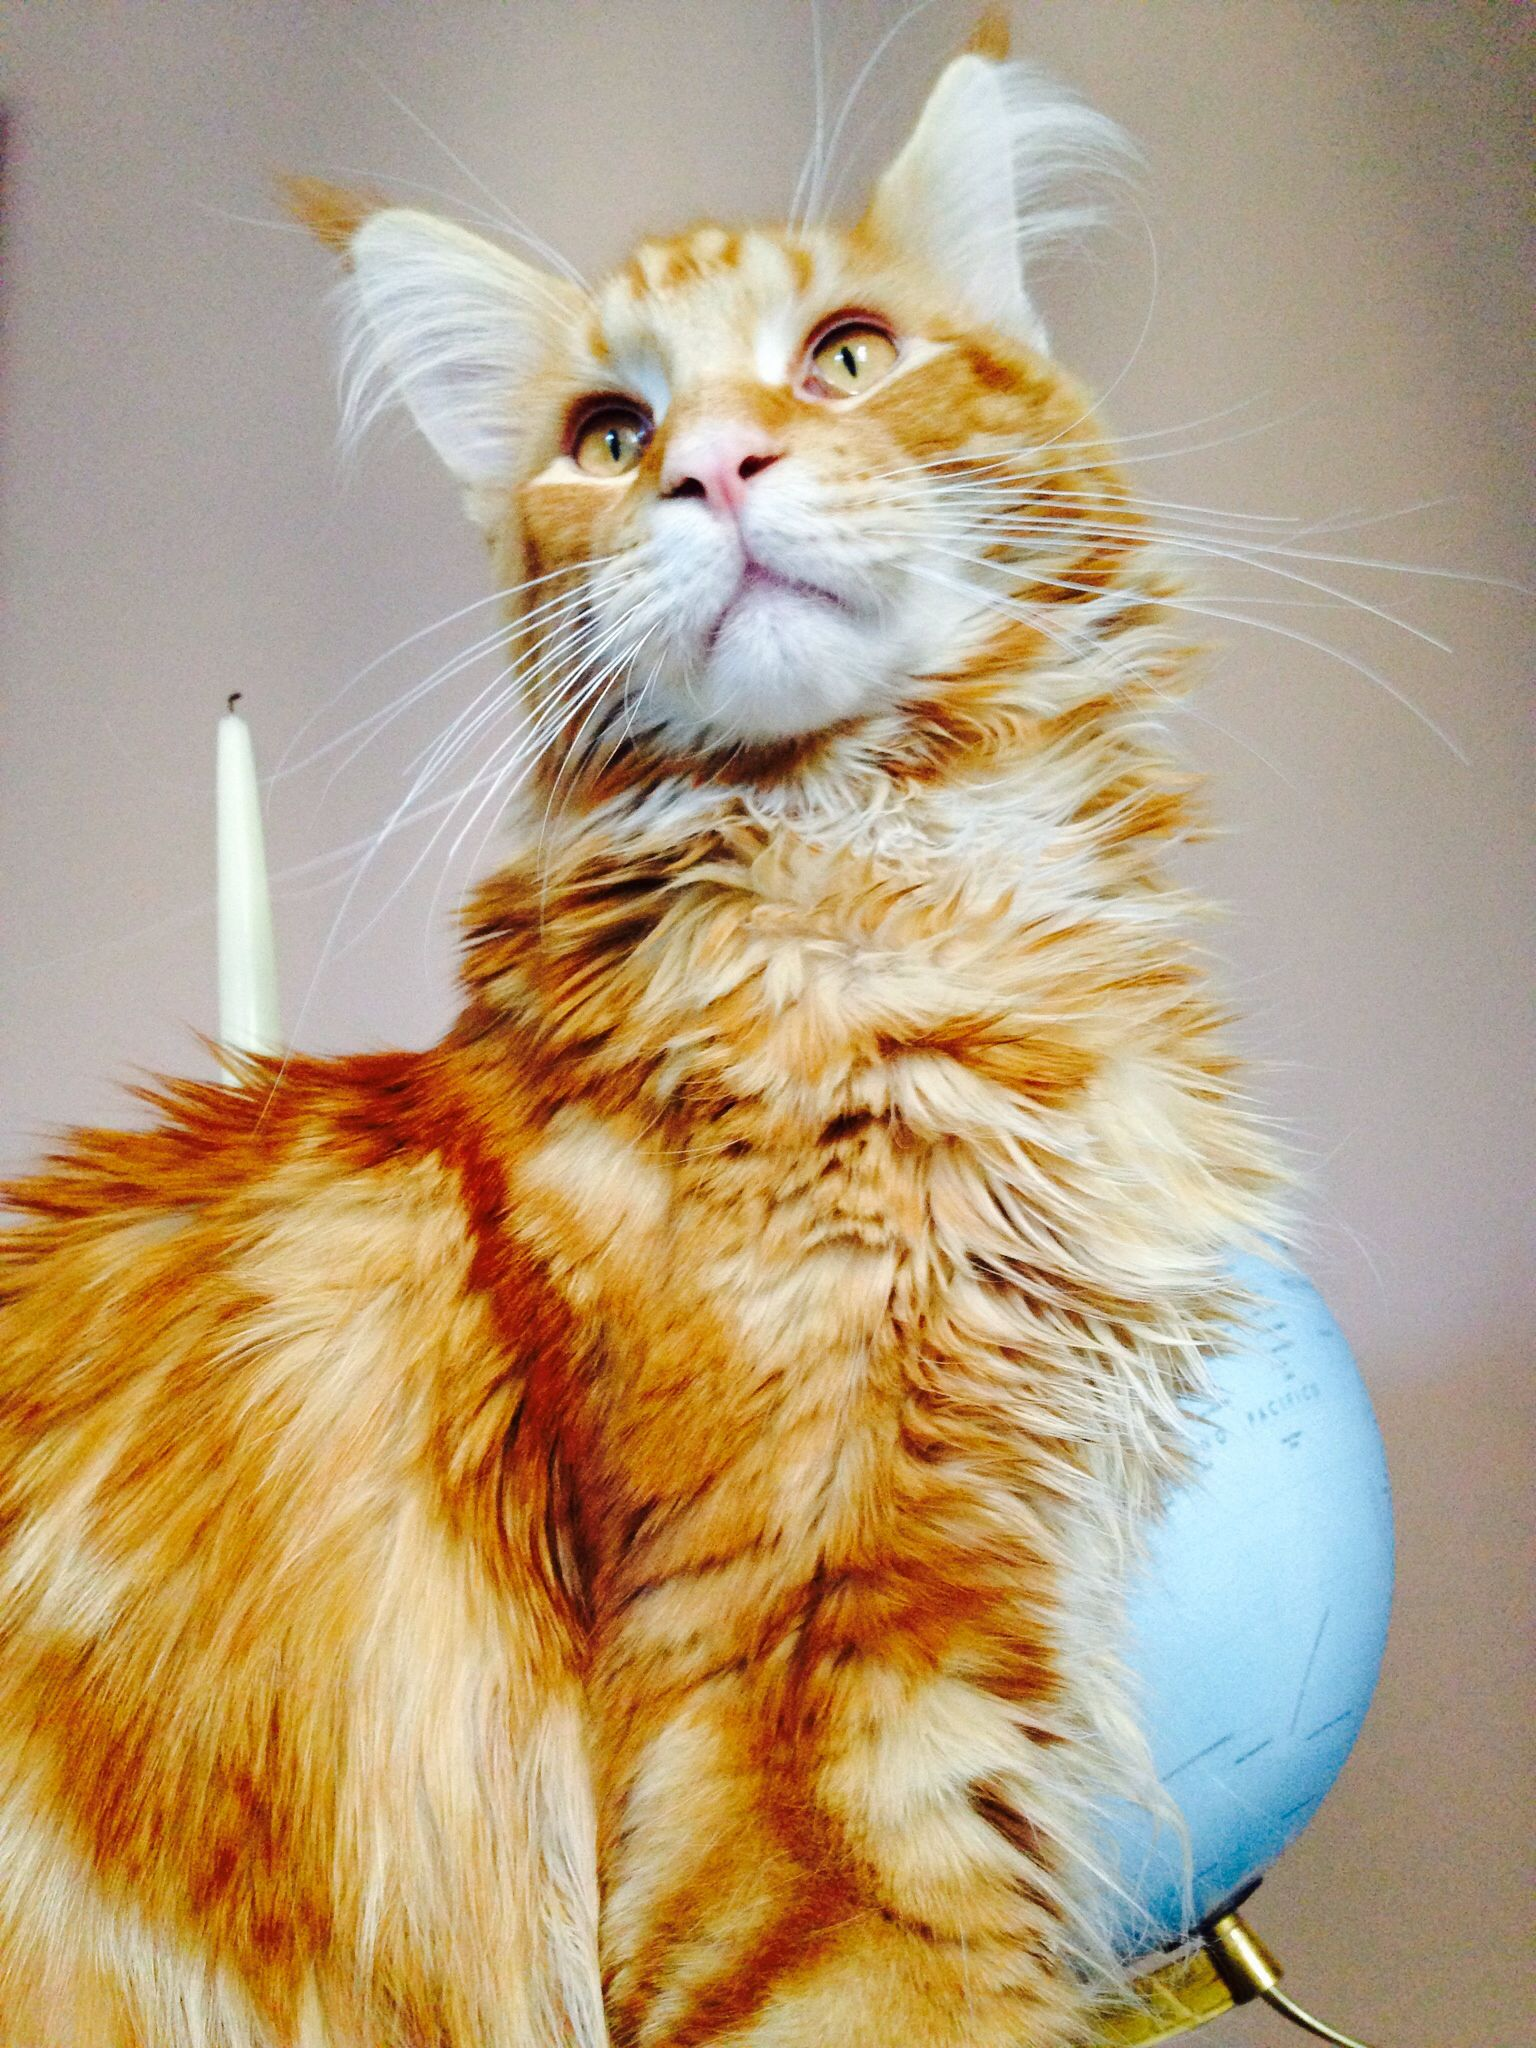 Pin on Maine Coons & Cousins